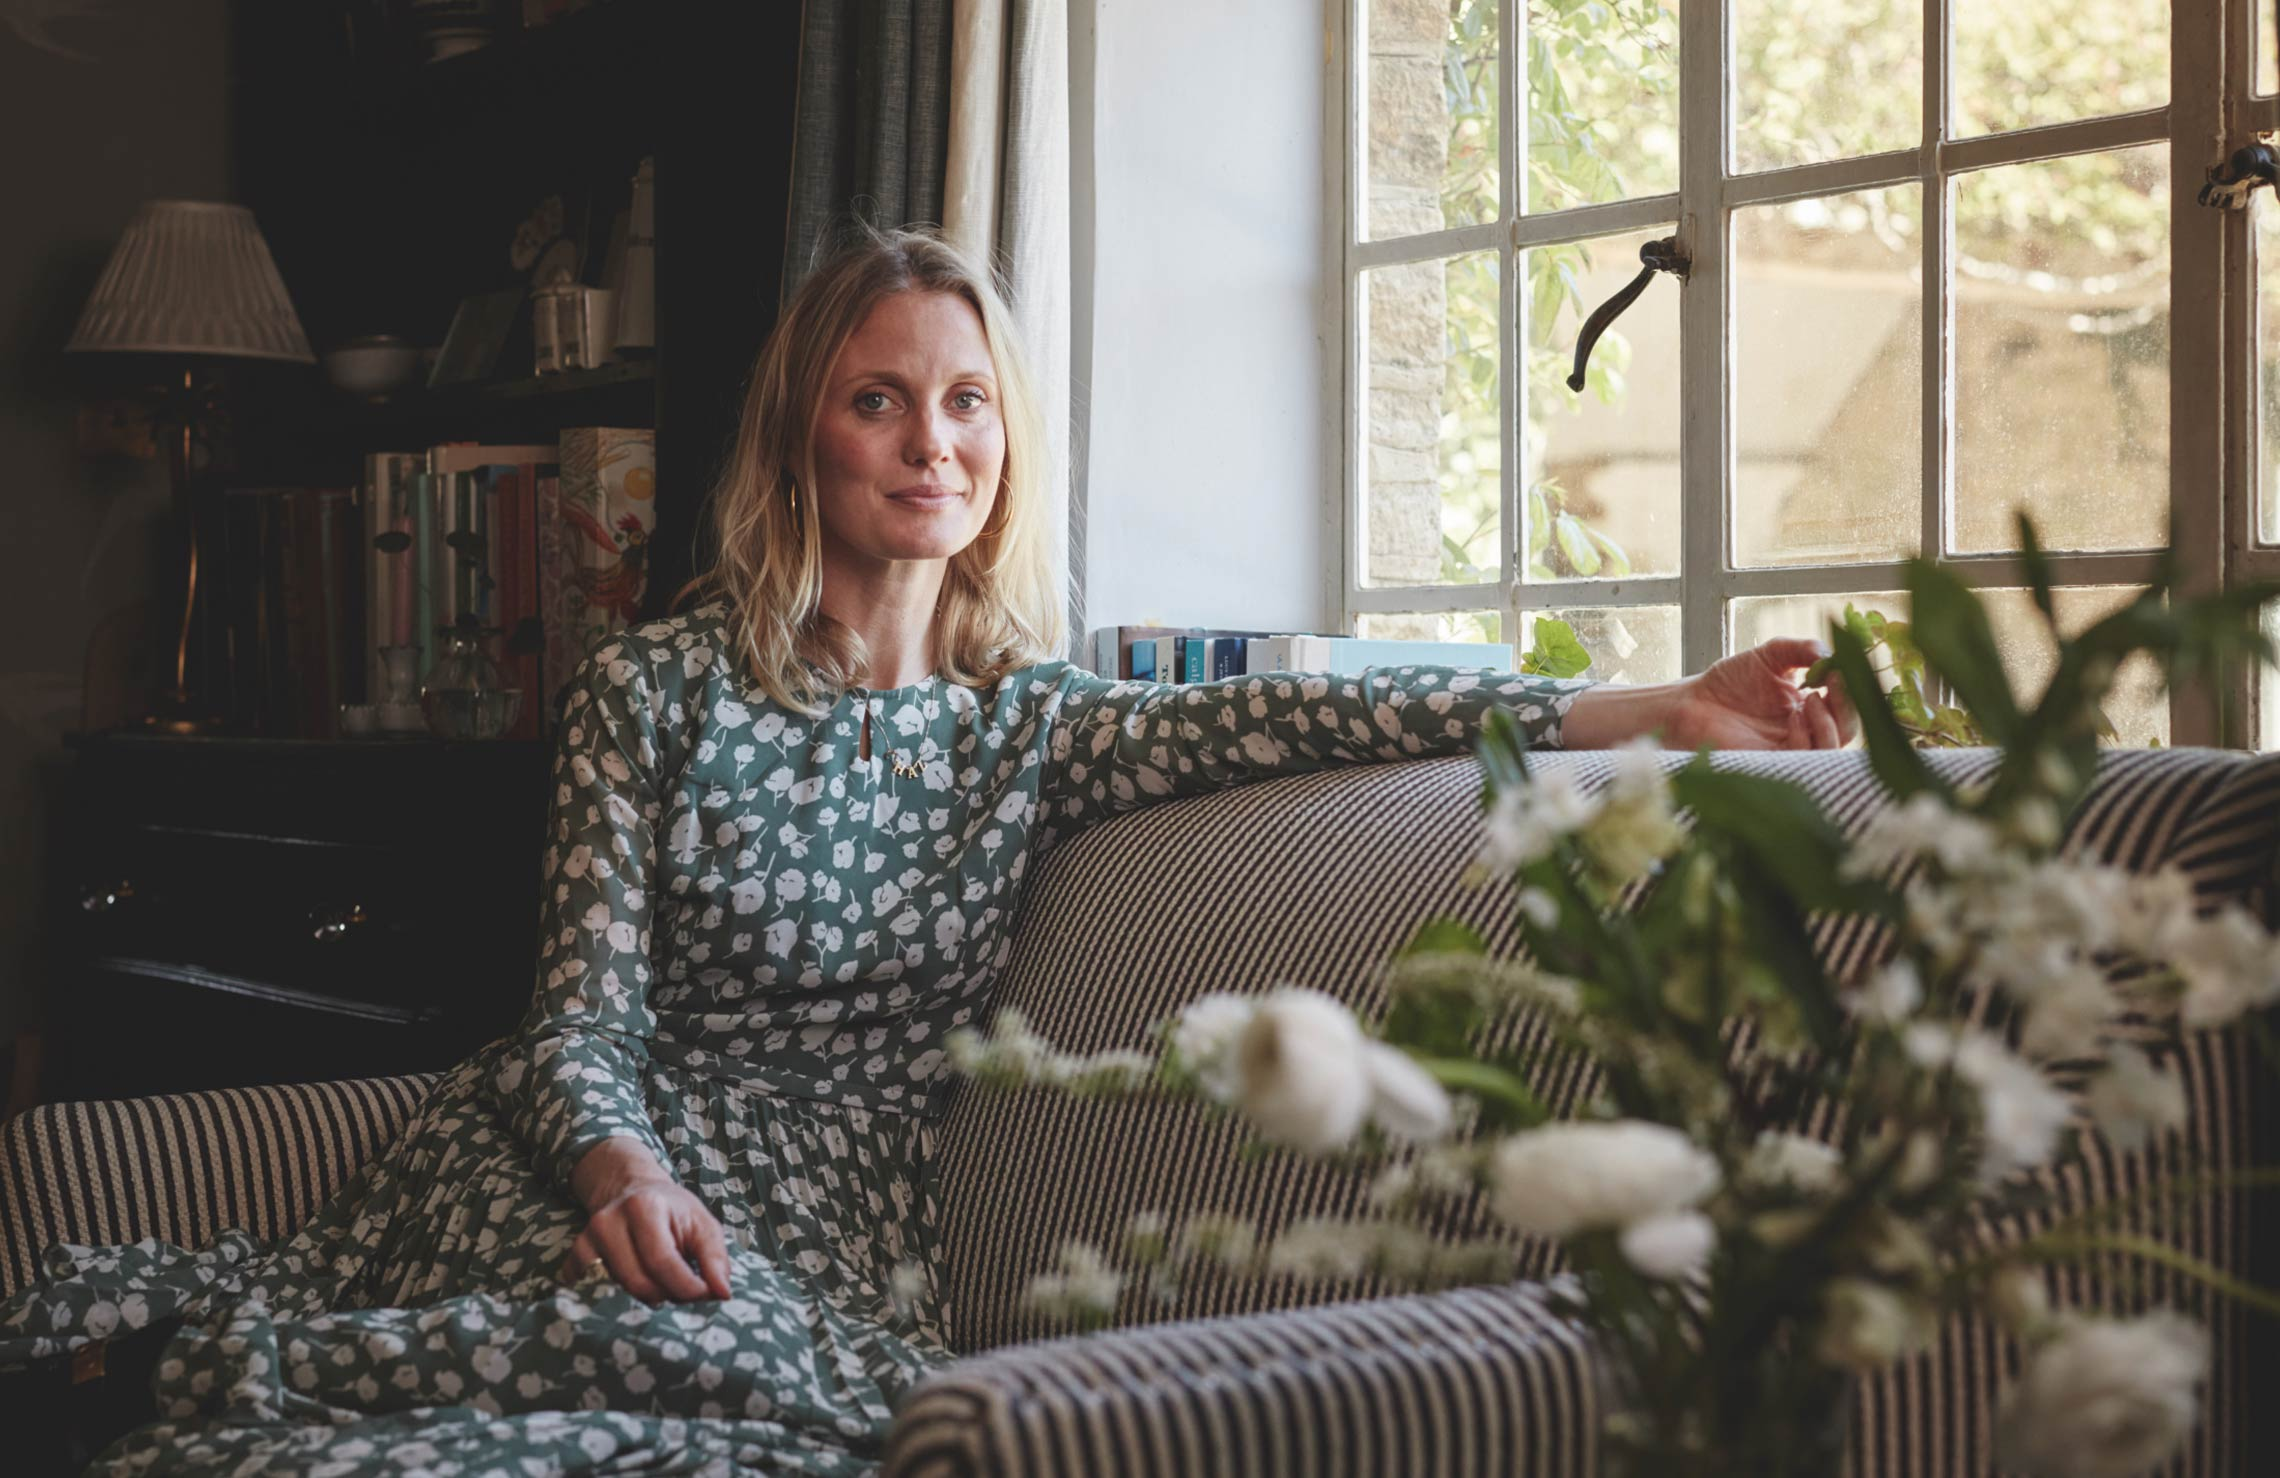 Bringing Nature Inside with Willow Crossley